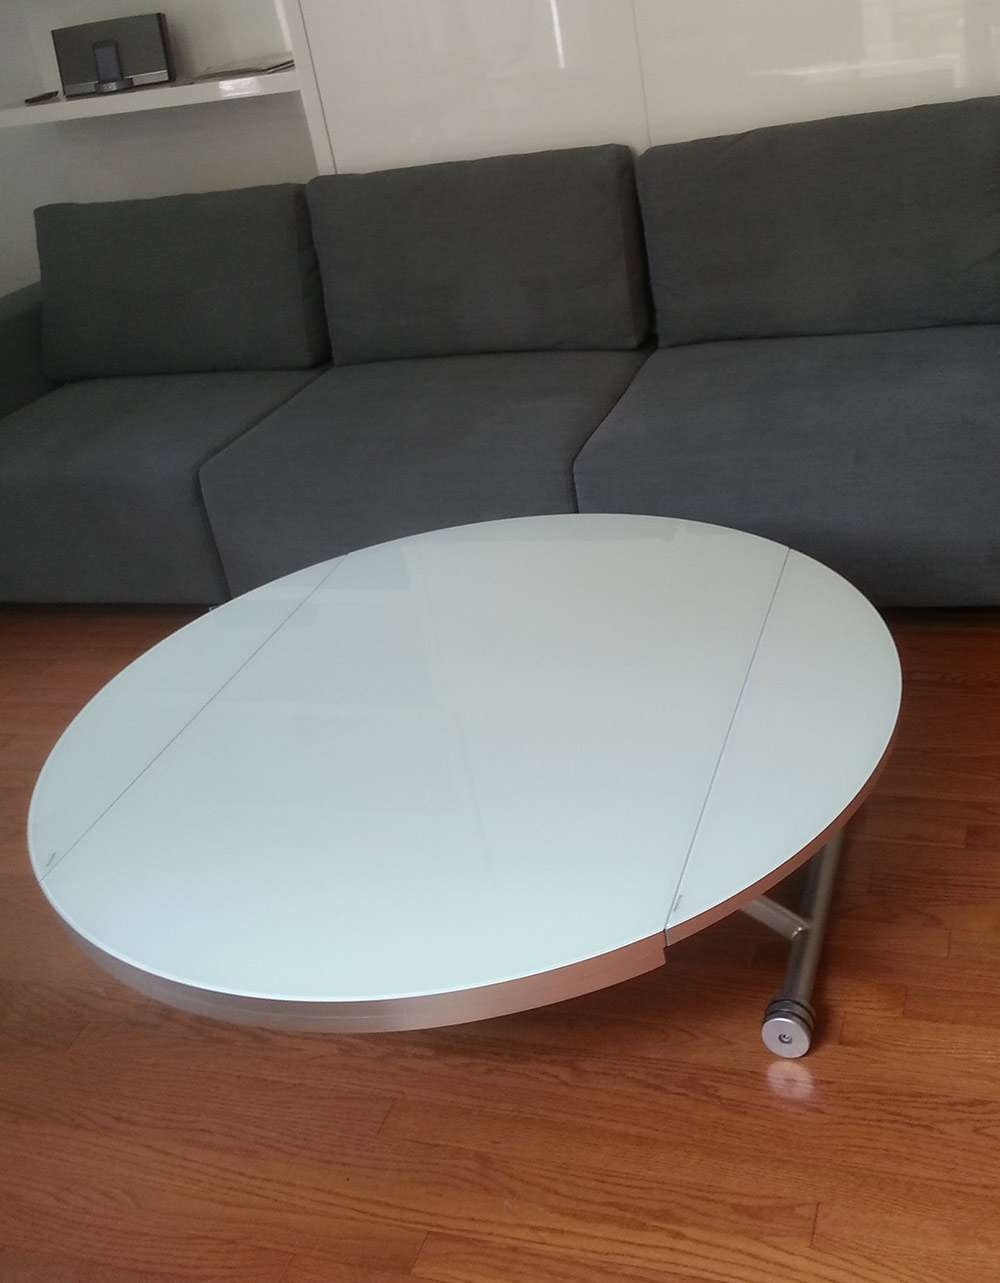 Expand Furniture Regarding Famous Round Coffee Tables (View 18 of 20)